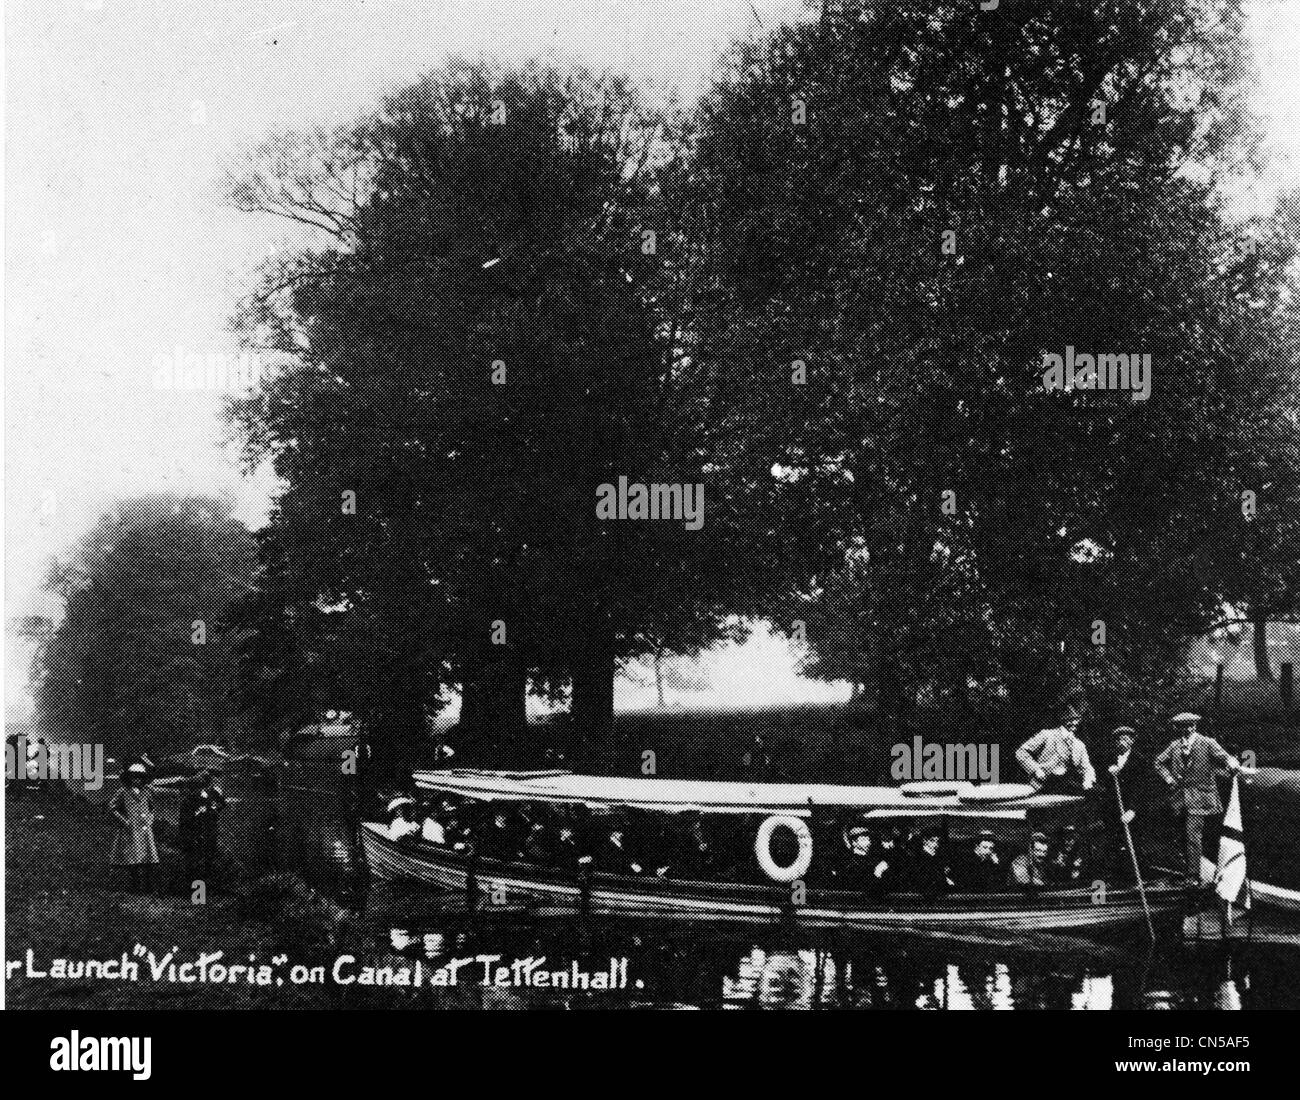 Launch on Staffordshire and Worcestershire Canal, Tettenhall, early 20th century. - Stock Image